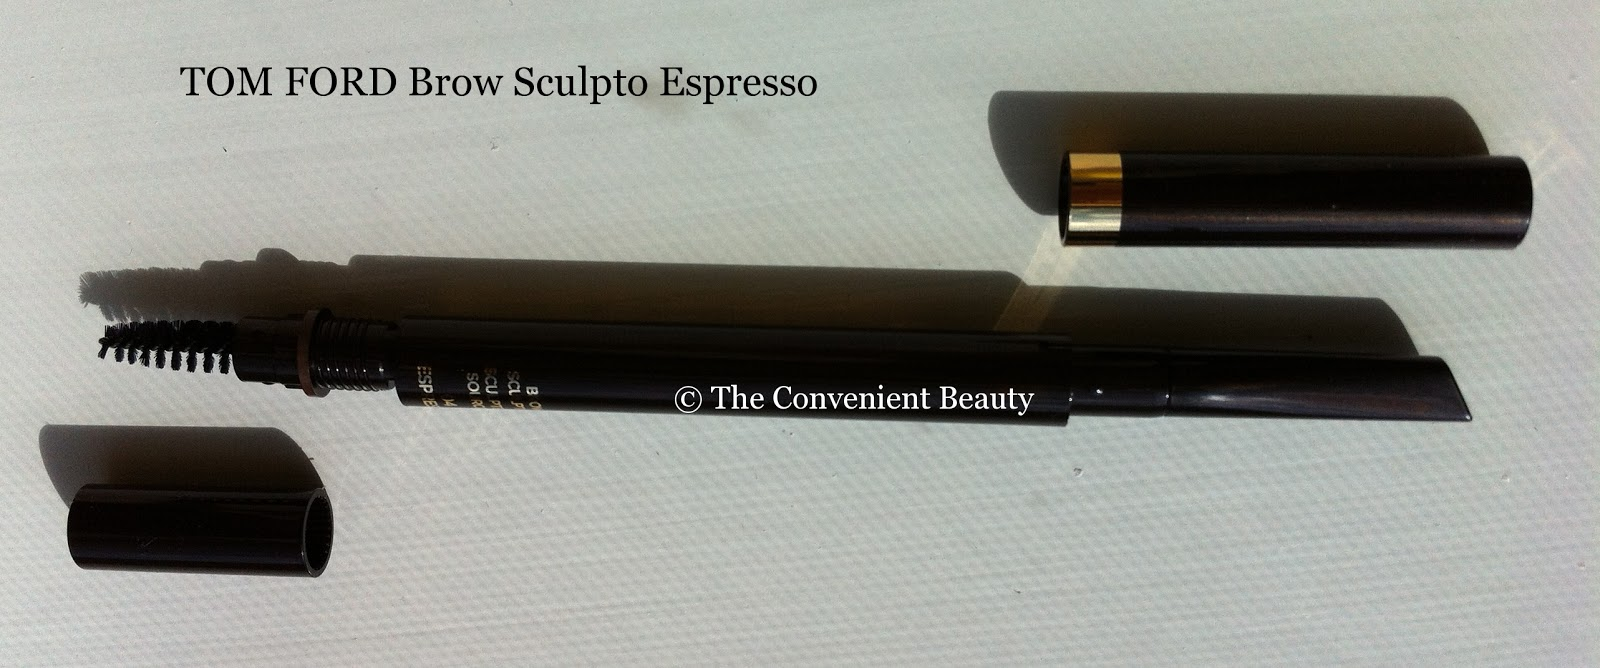 The Convenient Beauty Review Tom Ford Brow Sculptor In Espresso